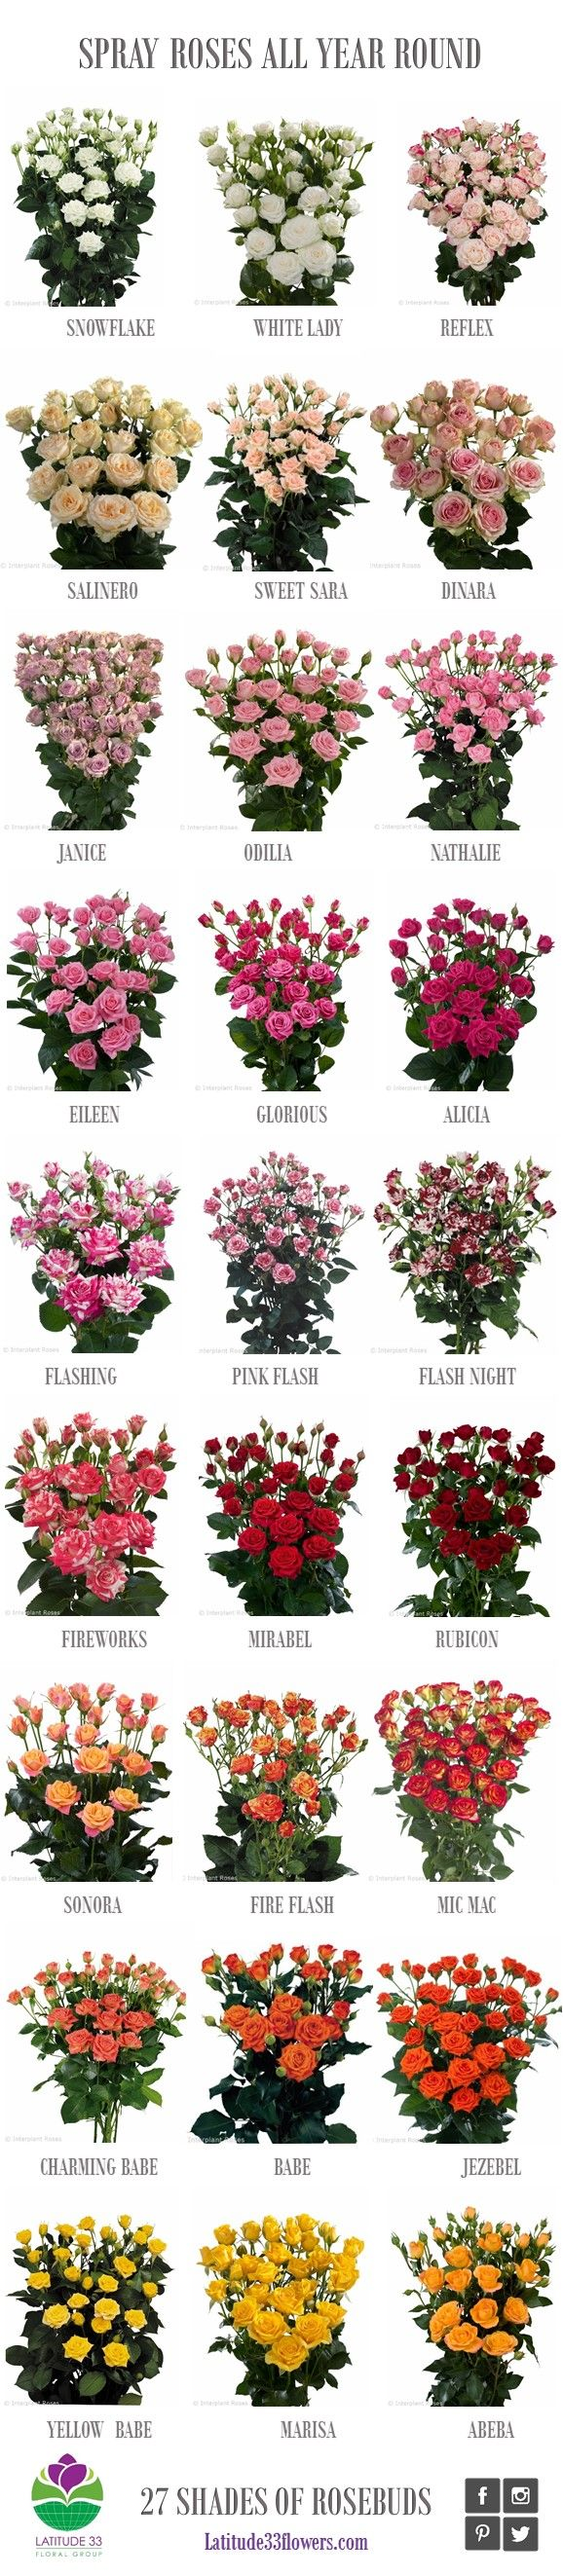 All our spray rose varieties, all year round <3